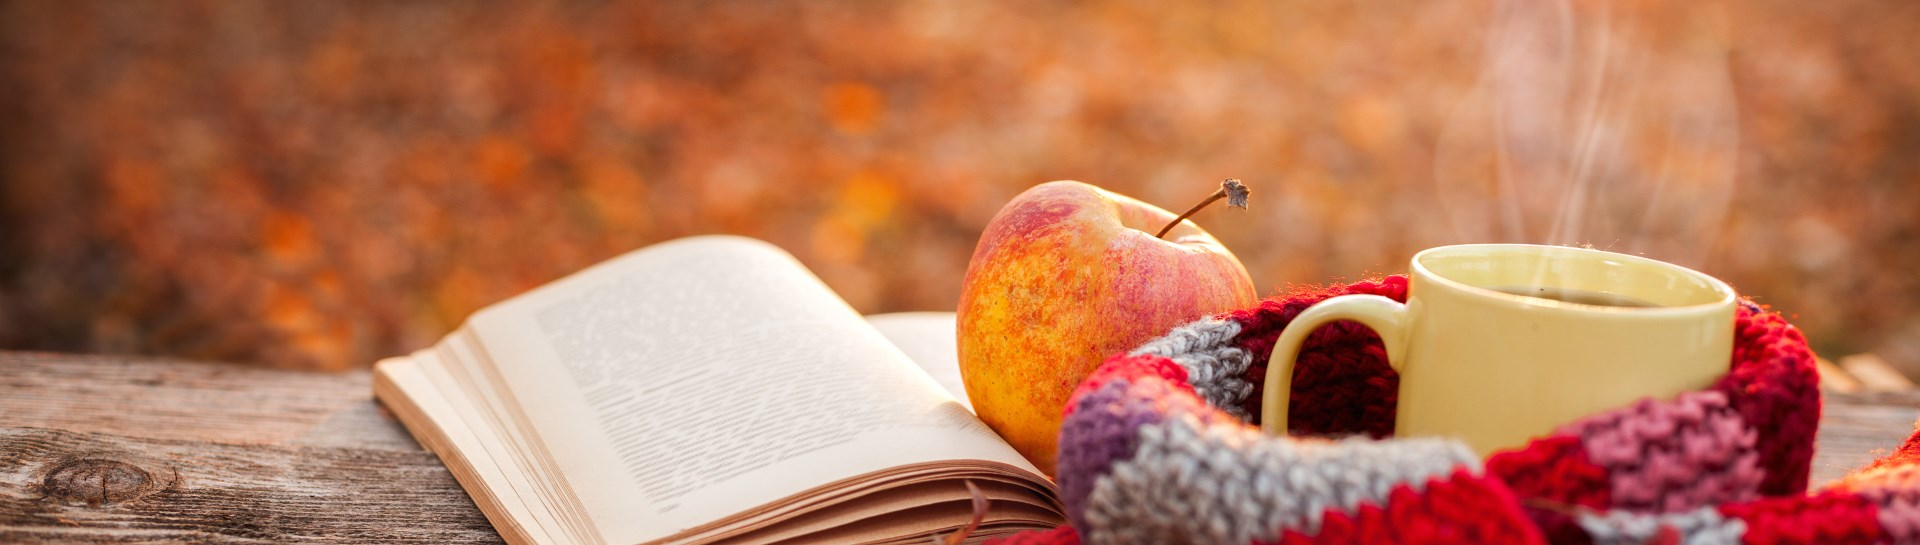 staged image of coffee, apple and open book on plaid blanket outside in fall